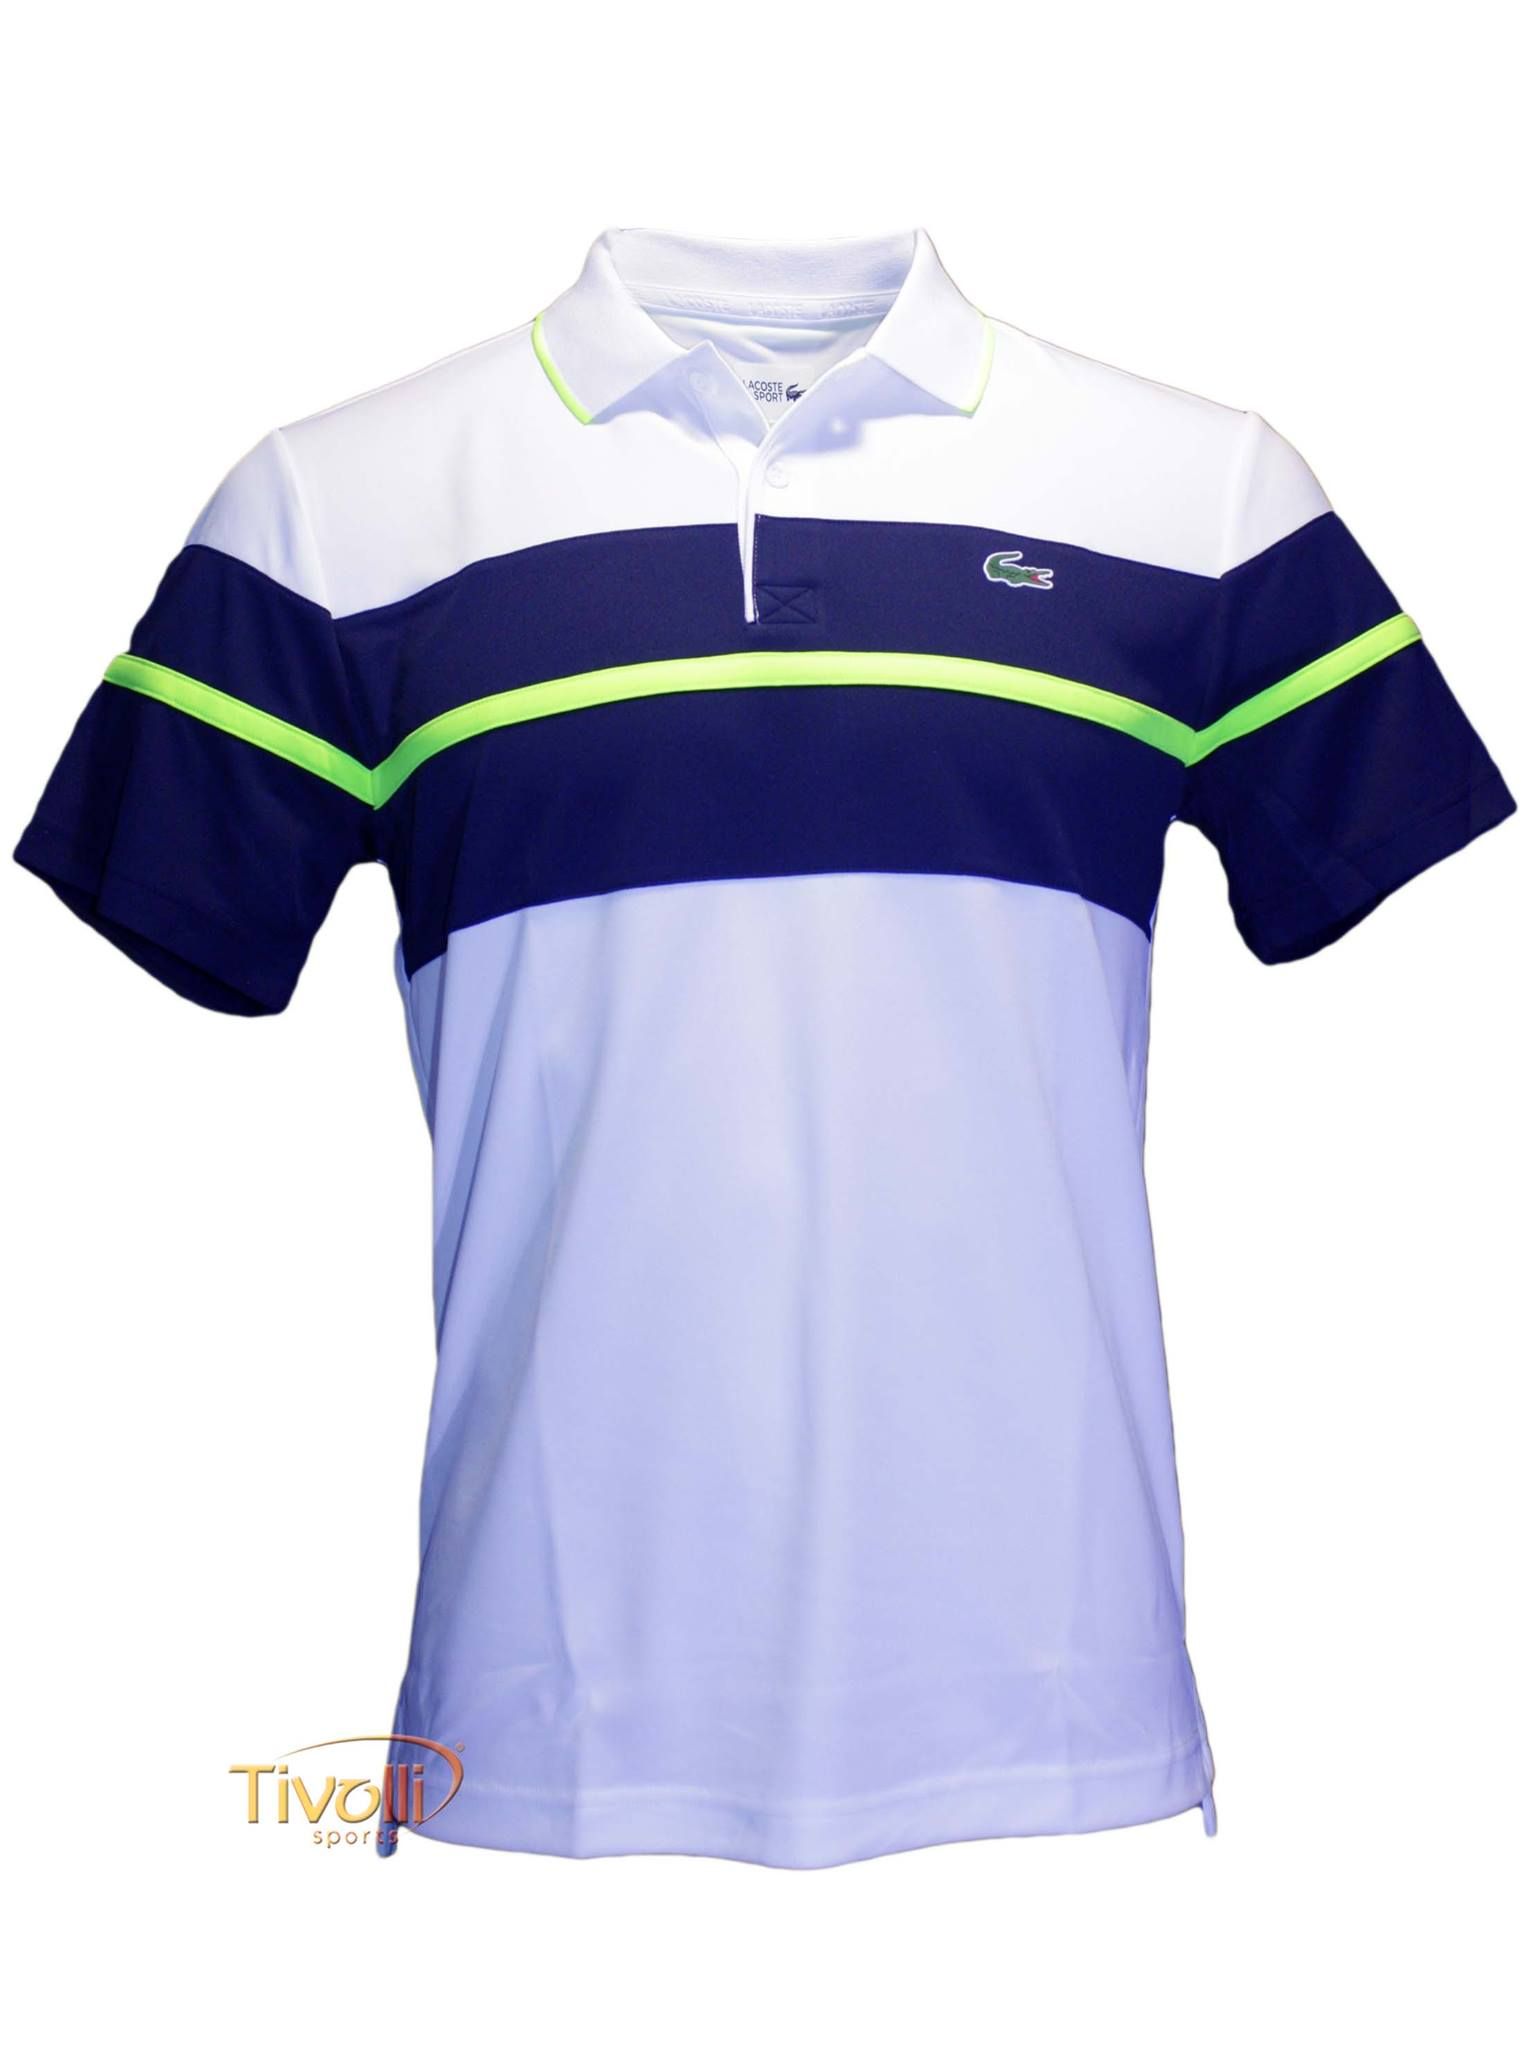 04318d1fc3 Raquete Mania   Camisa Polo Lacoste Sport Ultra Dry   Masculina ...